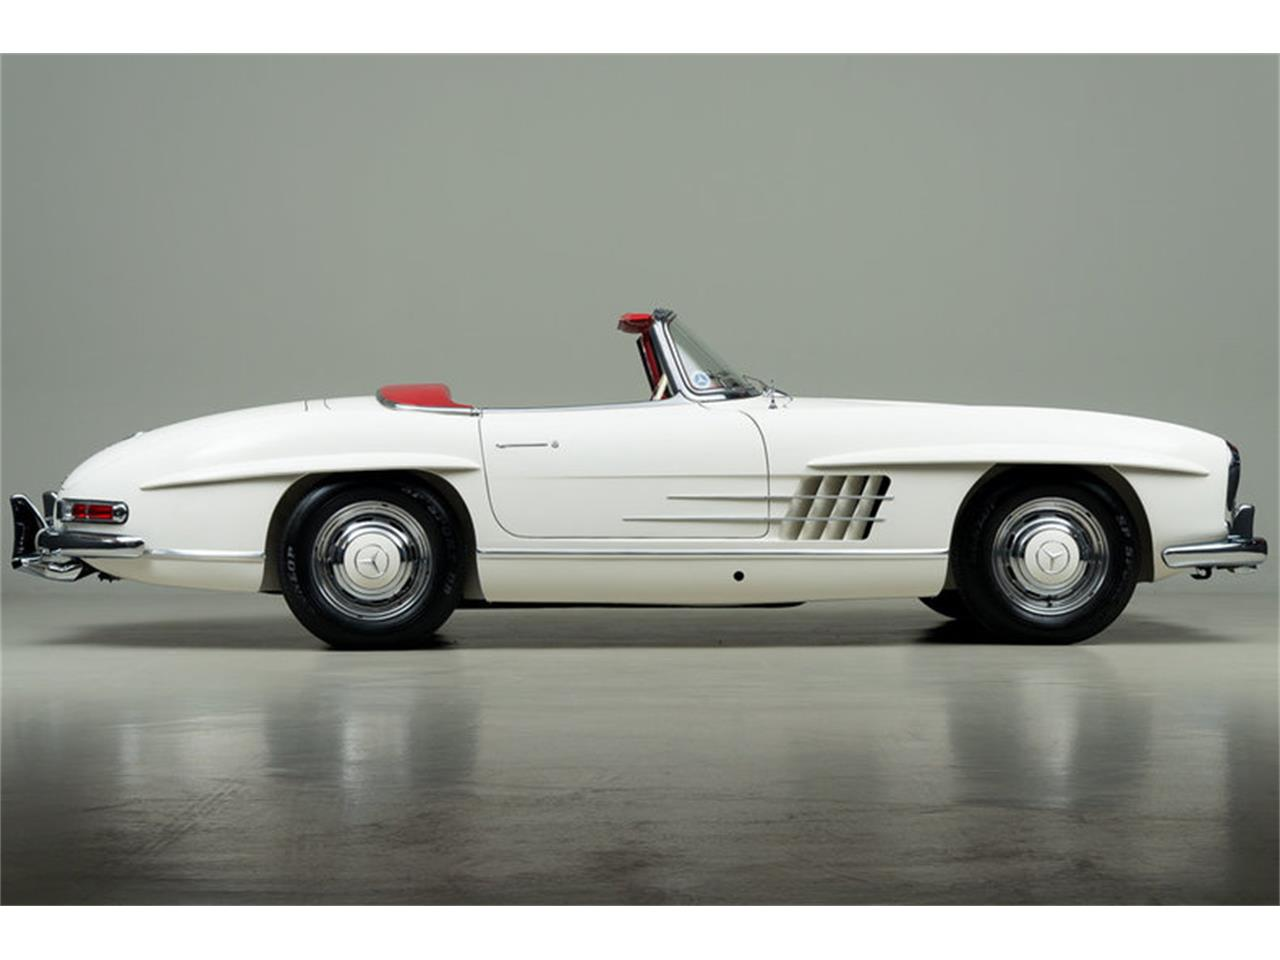 Large Picture of Classic '63 Mercedes-Benz 300SL Roadster located in Scotts Valley California Auction Vehicle Offered by Canepa - EFPZ